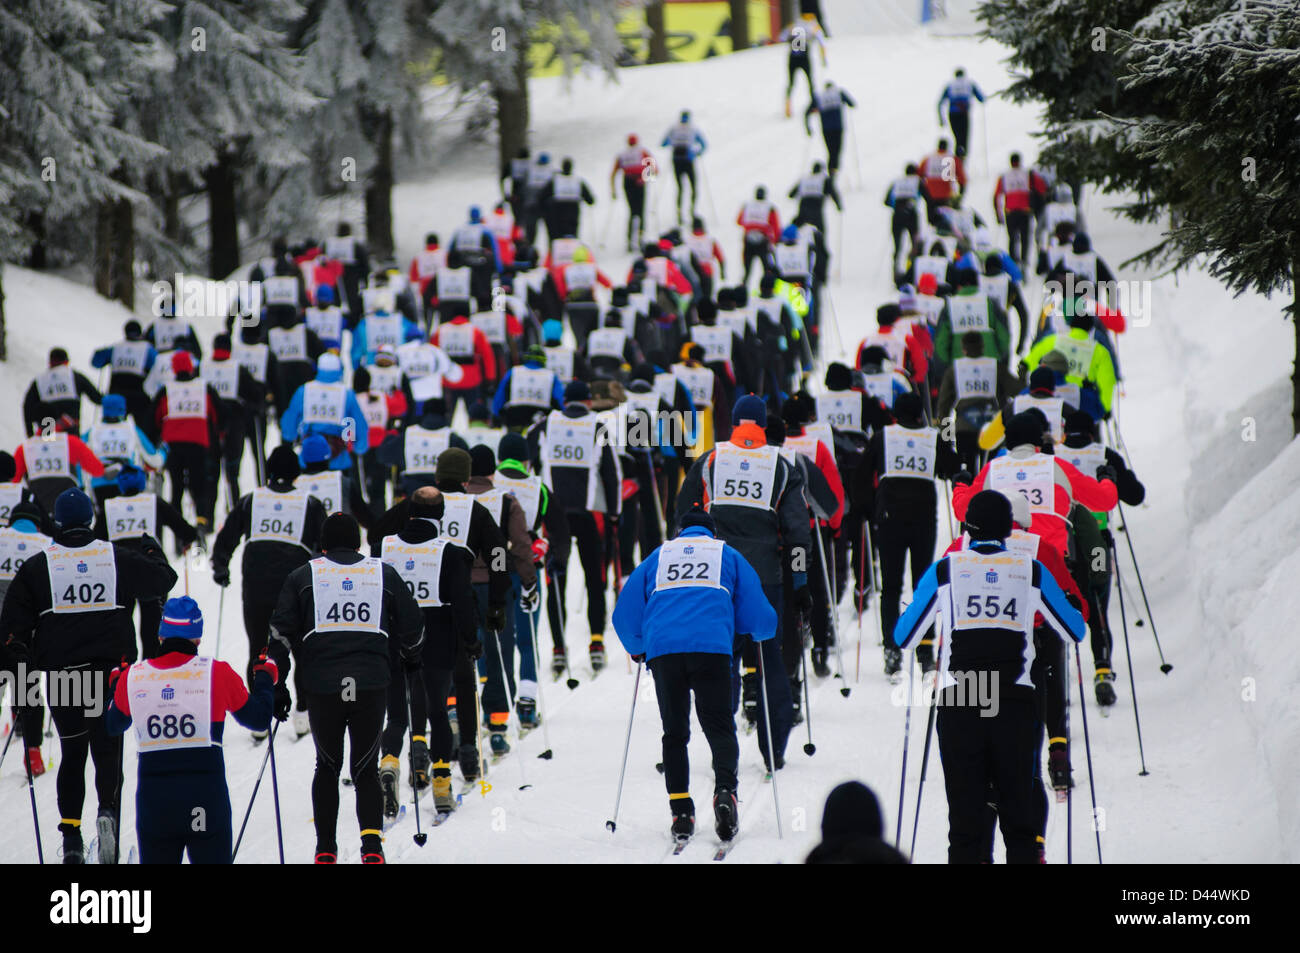 Participants go uphill during the Bieg Piastow cross-country race, Jakuszyce, Poland. - Stock Image